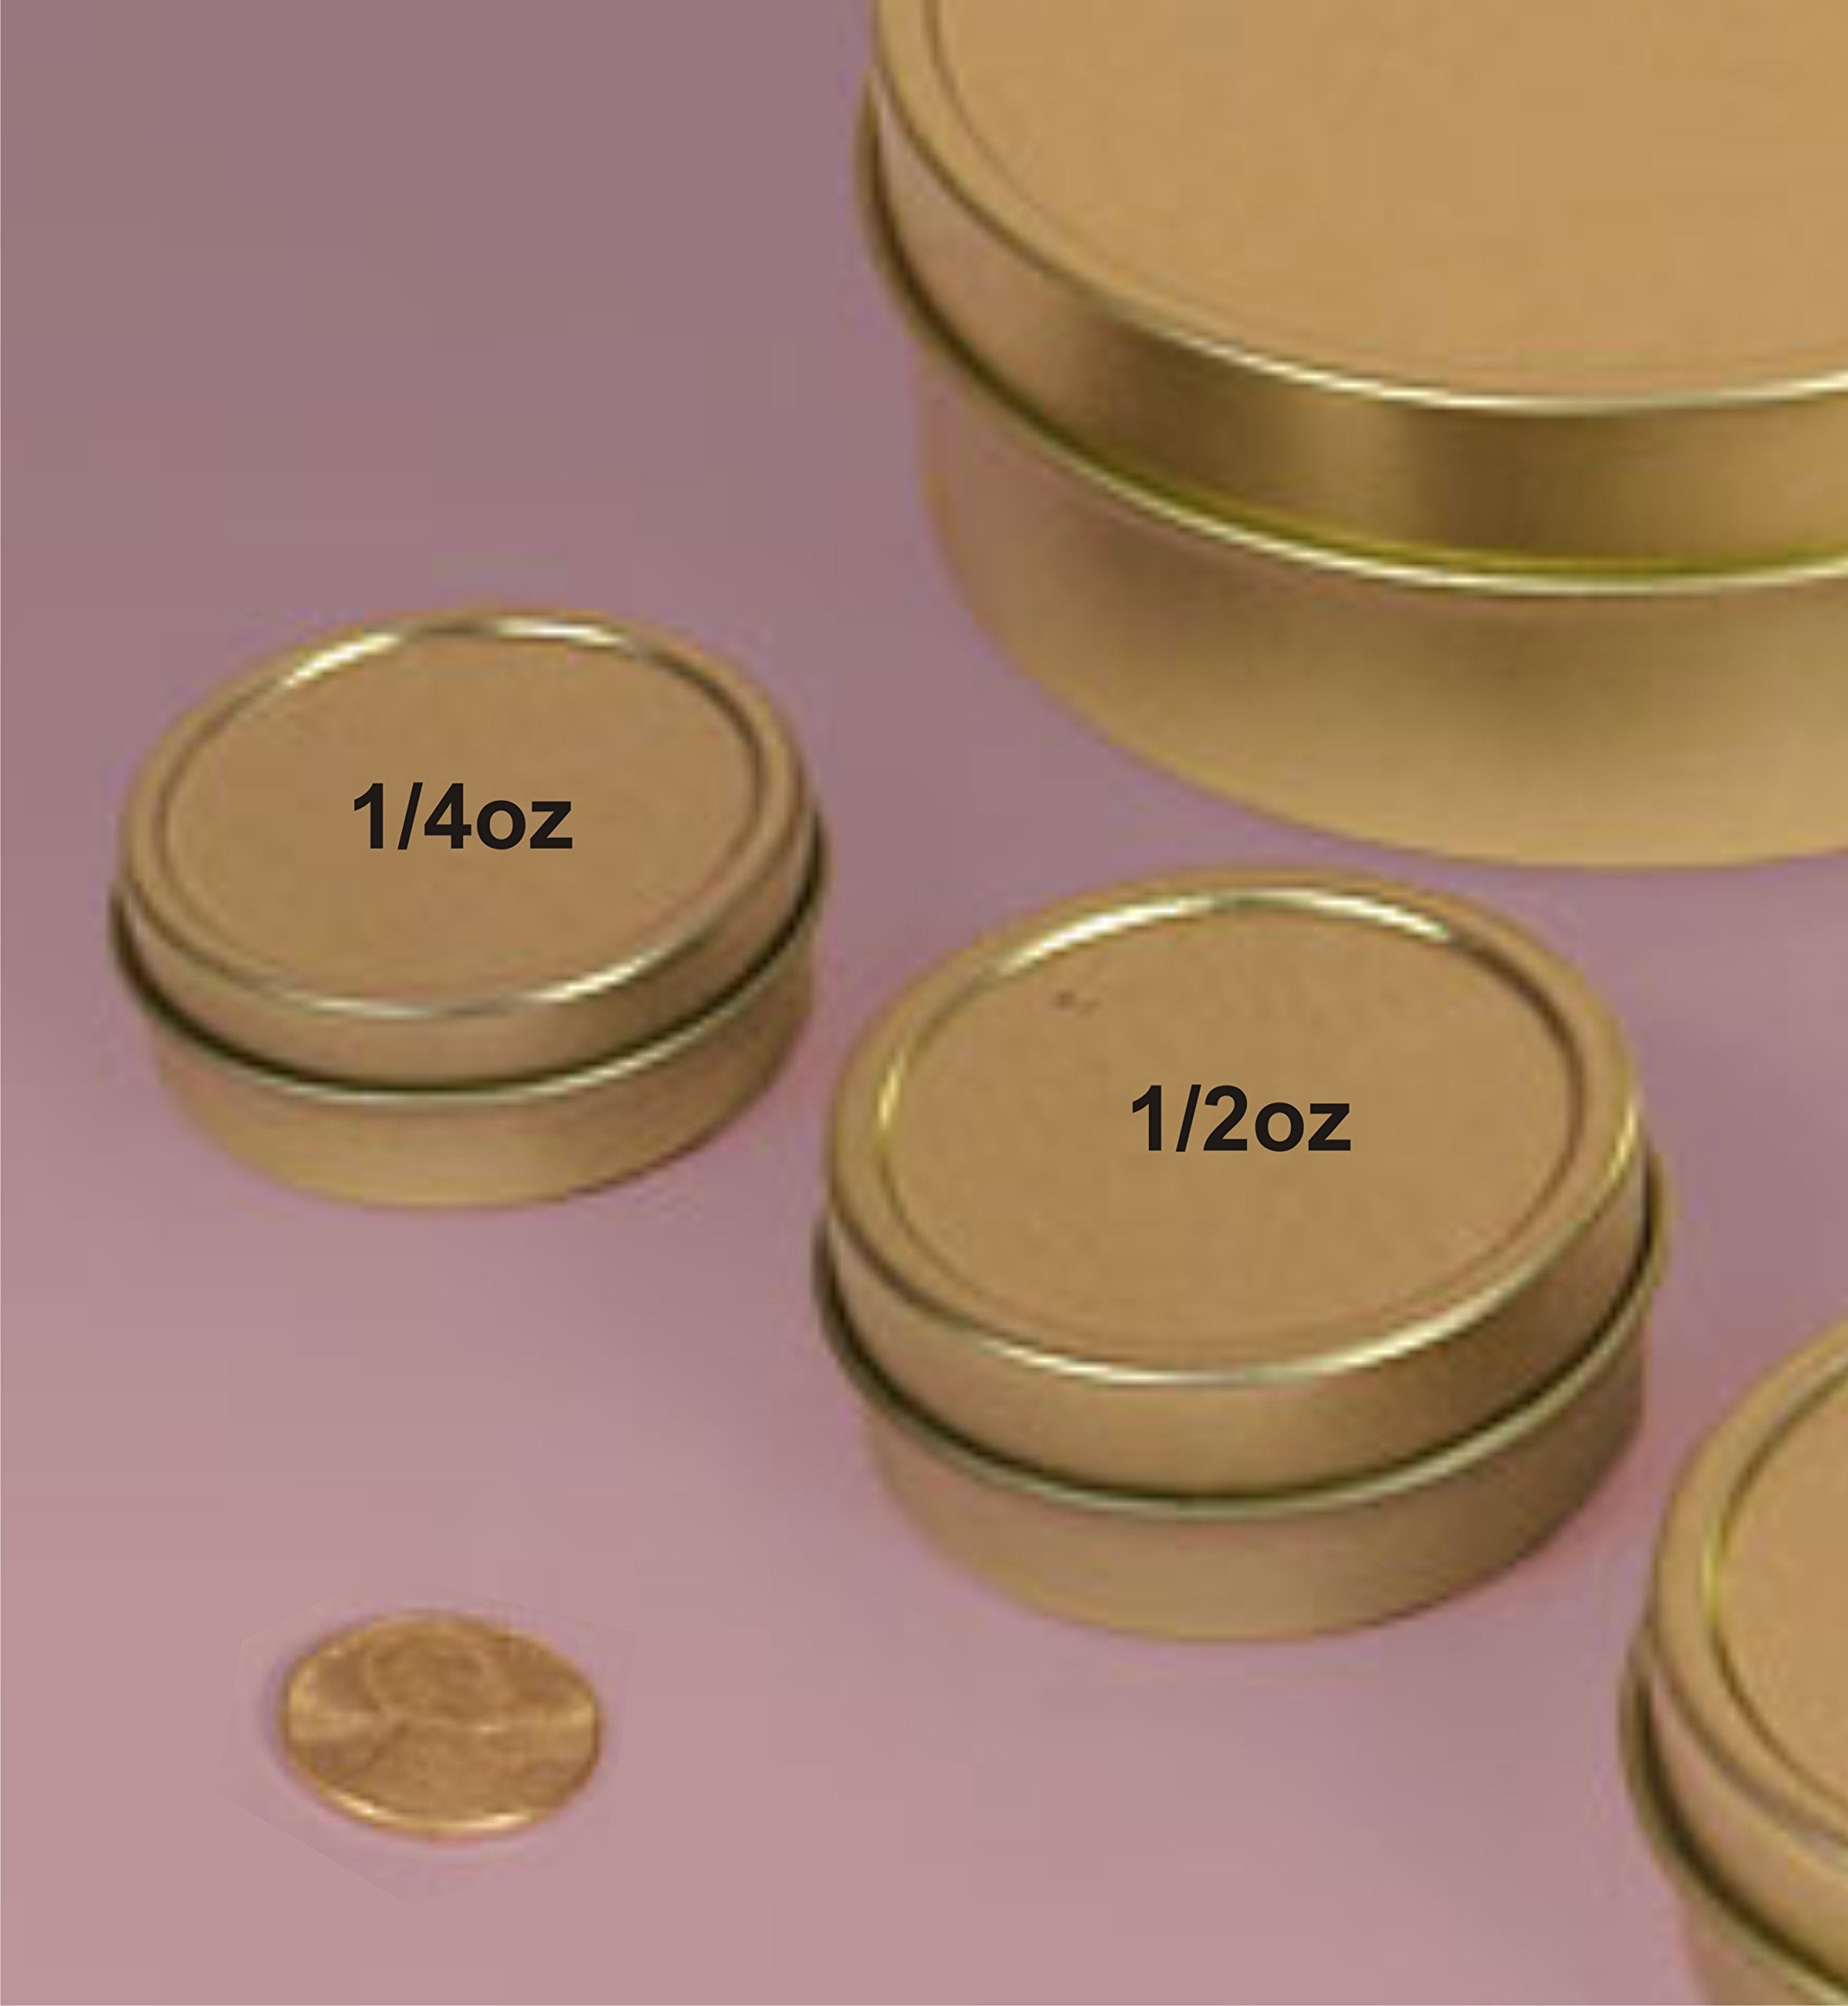 MagnaKoys 1/4oz & 1/2oz Empty Gold Slide Top Round Tin Containers for Lip Balm, Crafts, Cosmetic, Candles, Pocket Size (20, 1/2oz Tins)